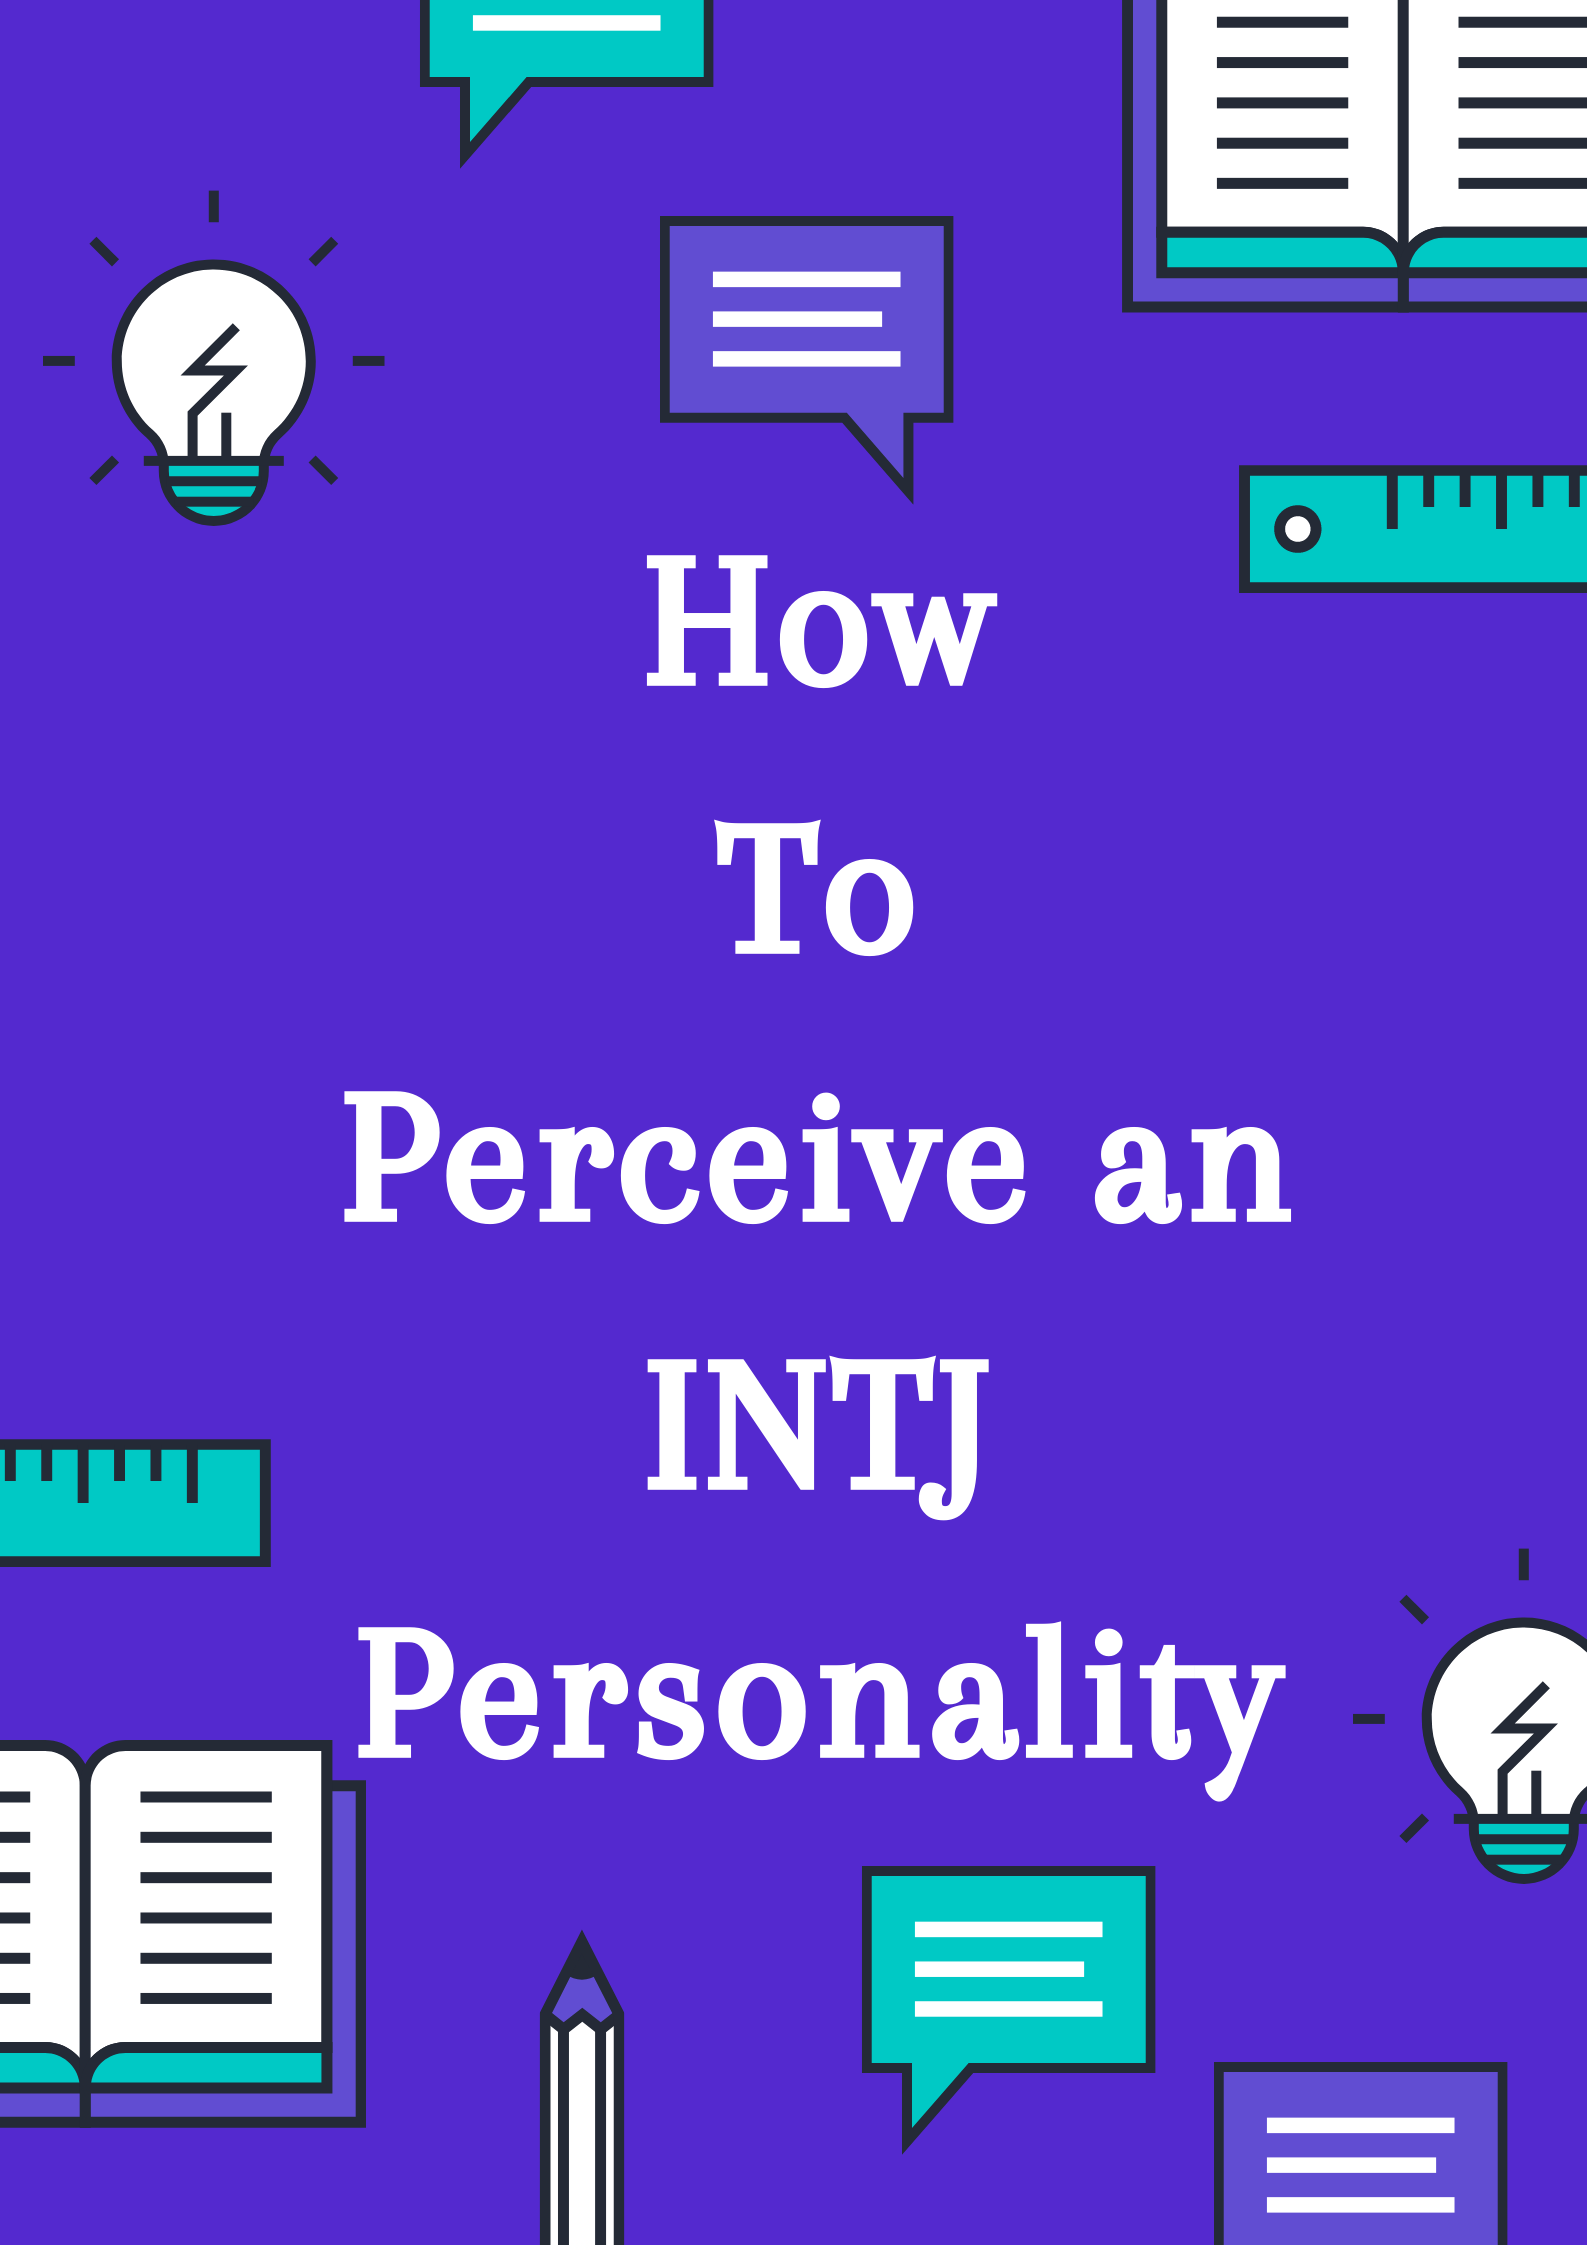 How To Percieve An INTJ Personality.png